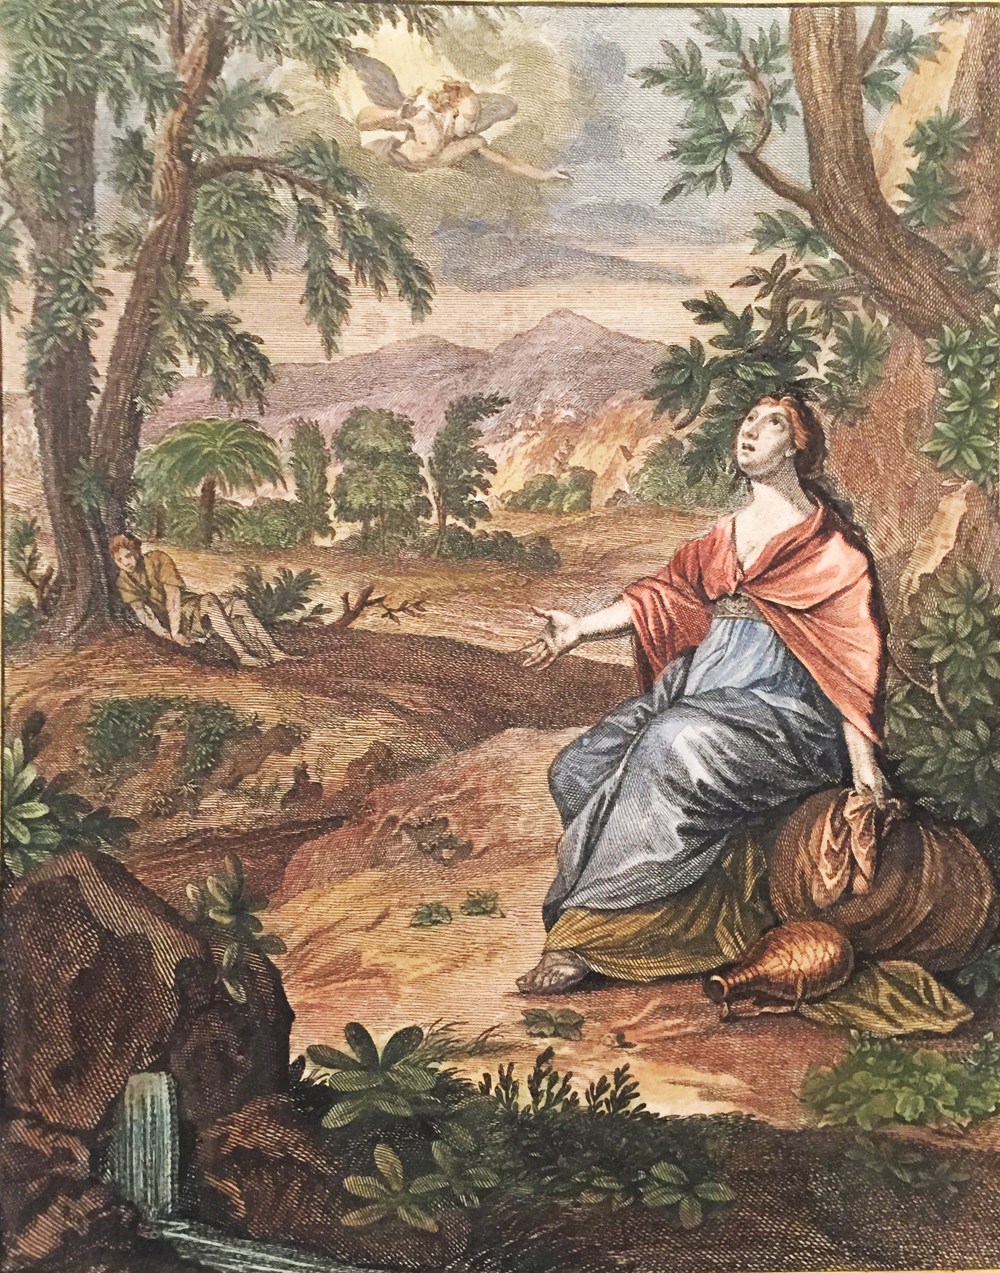 Hagar, Ishmael sees the Angel